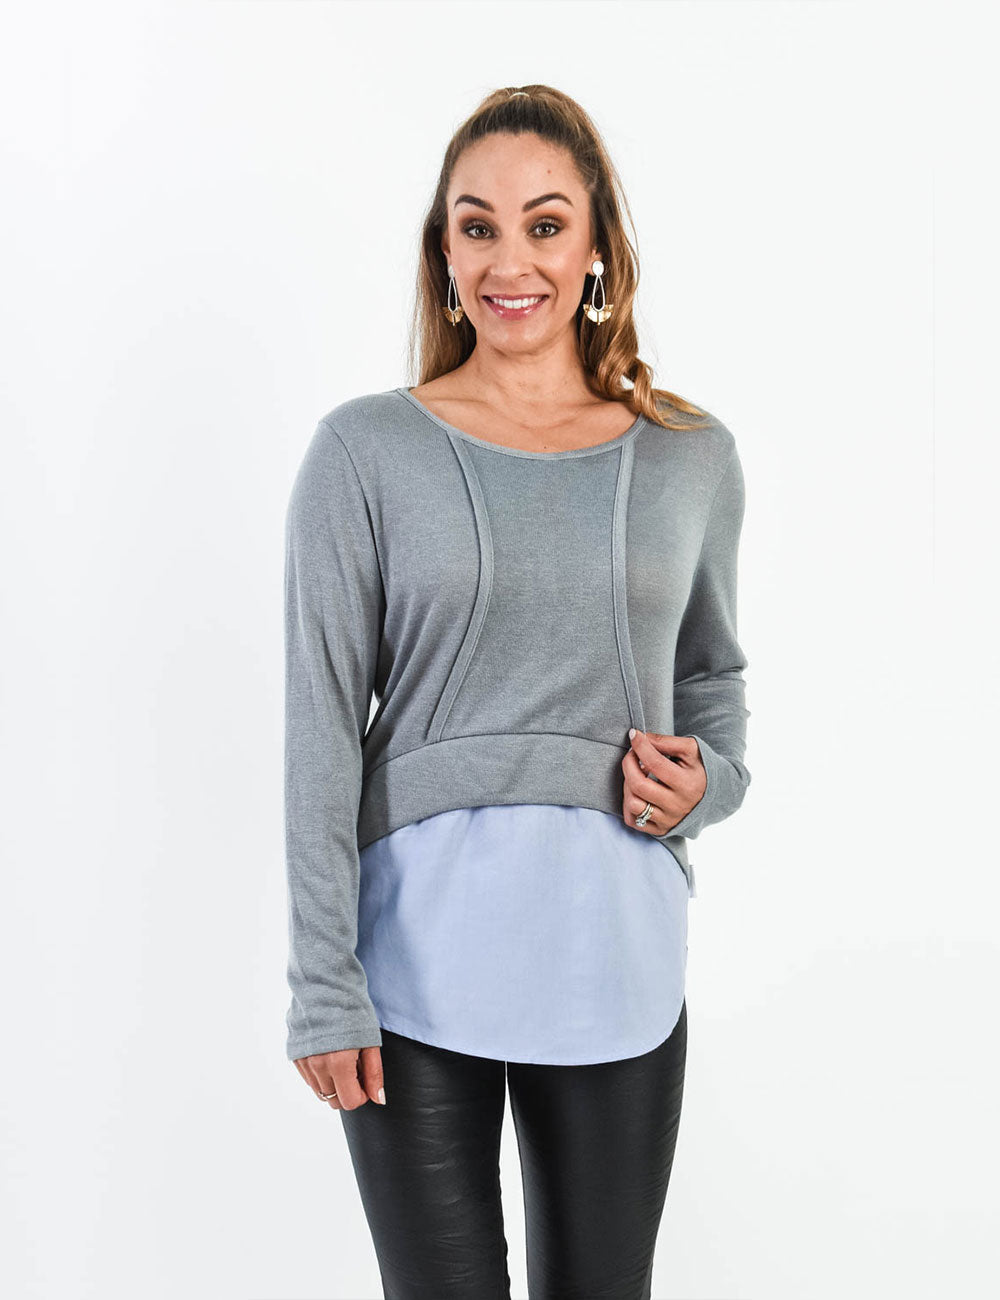 Curvy Love Knit Top - Grey/Lilac *Size 12 left*